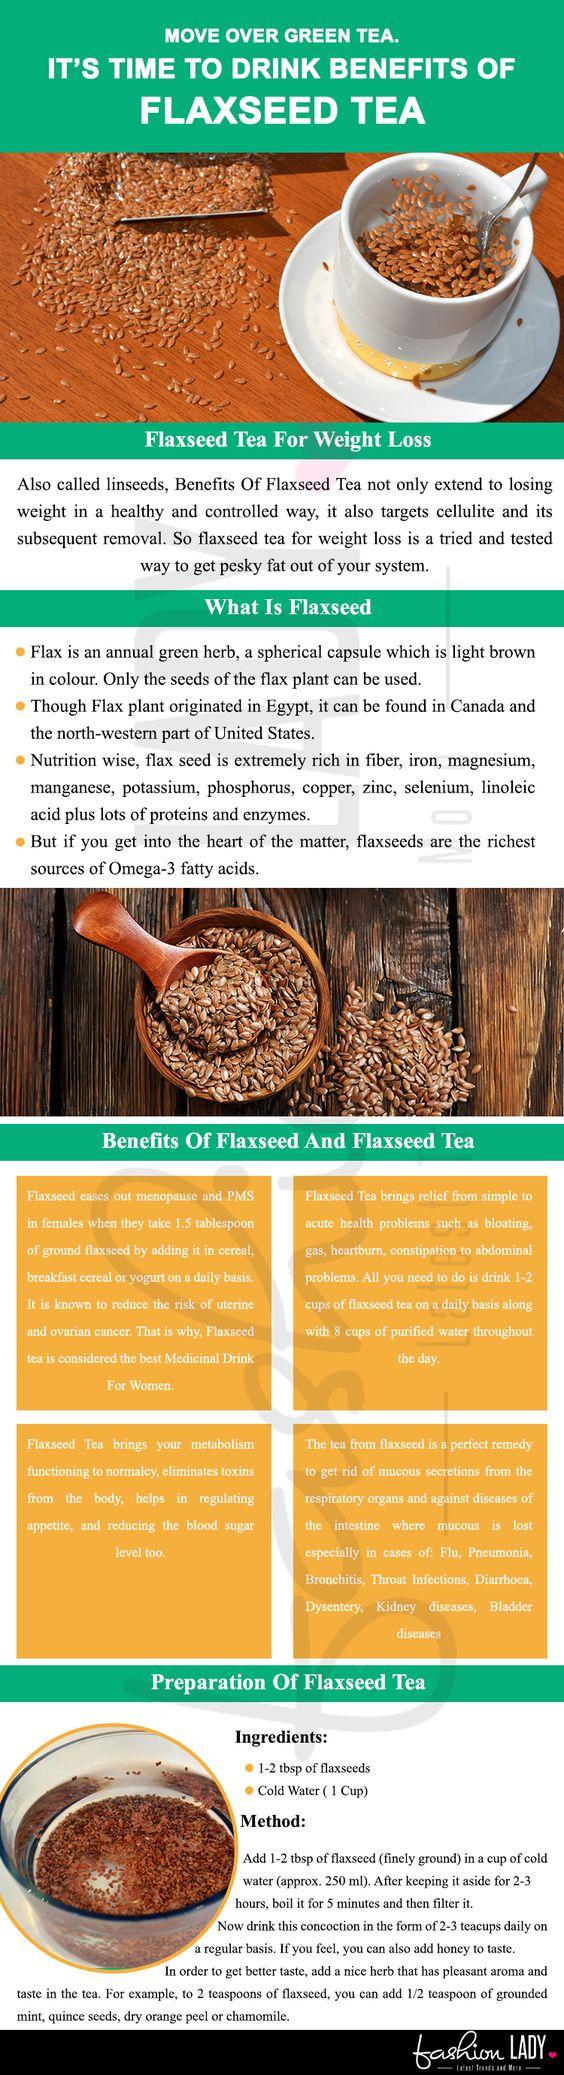 benefits of flaxseed tea